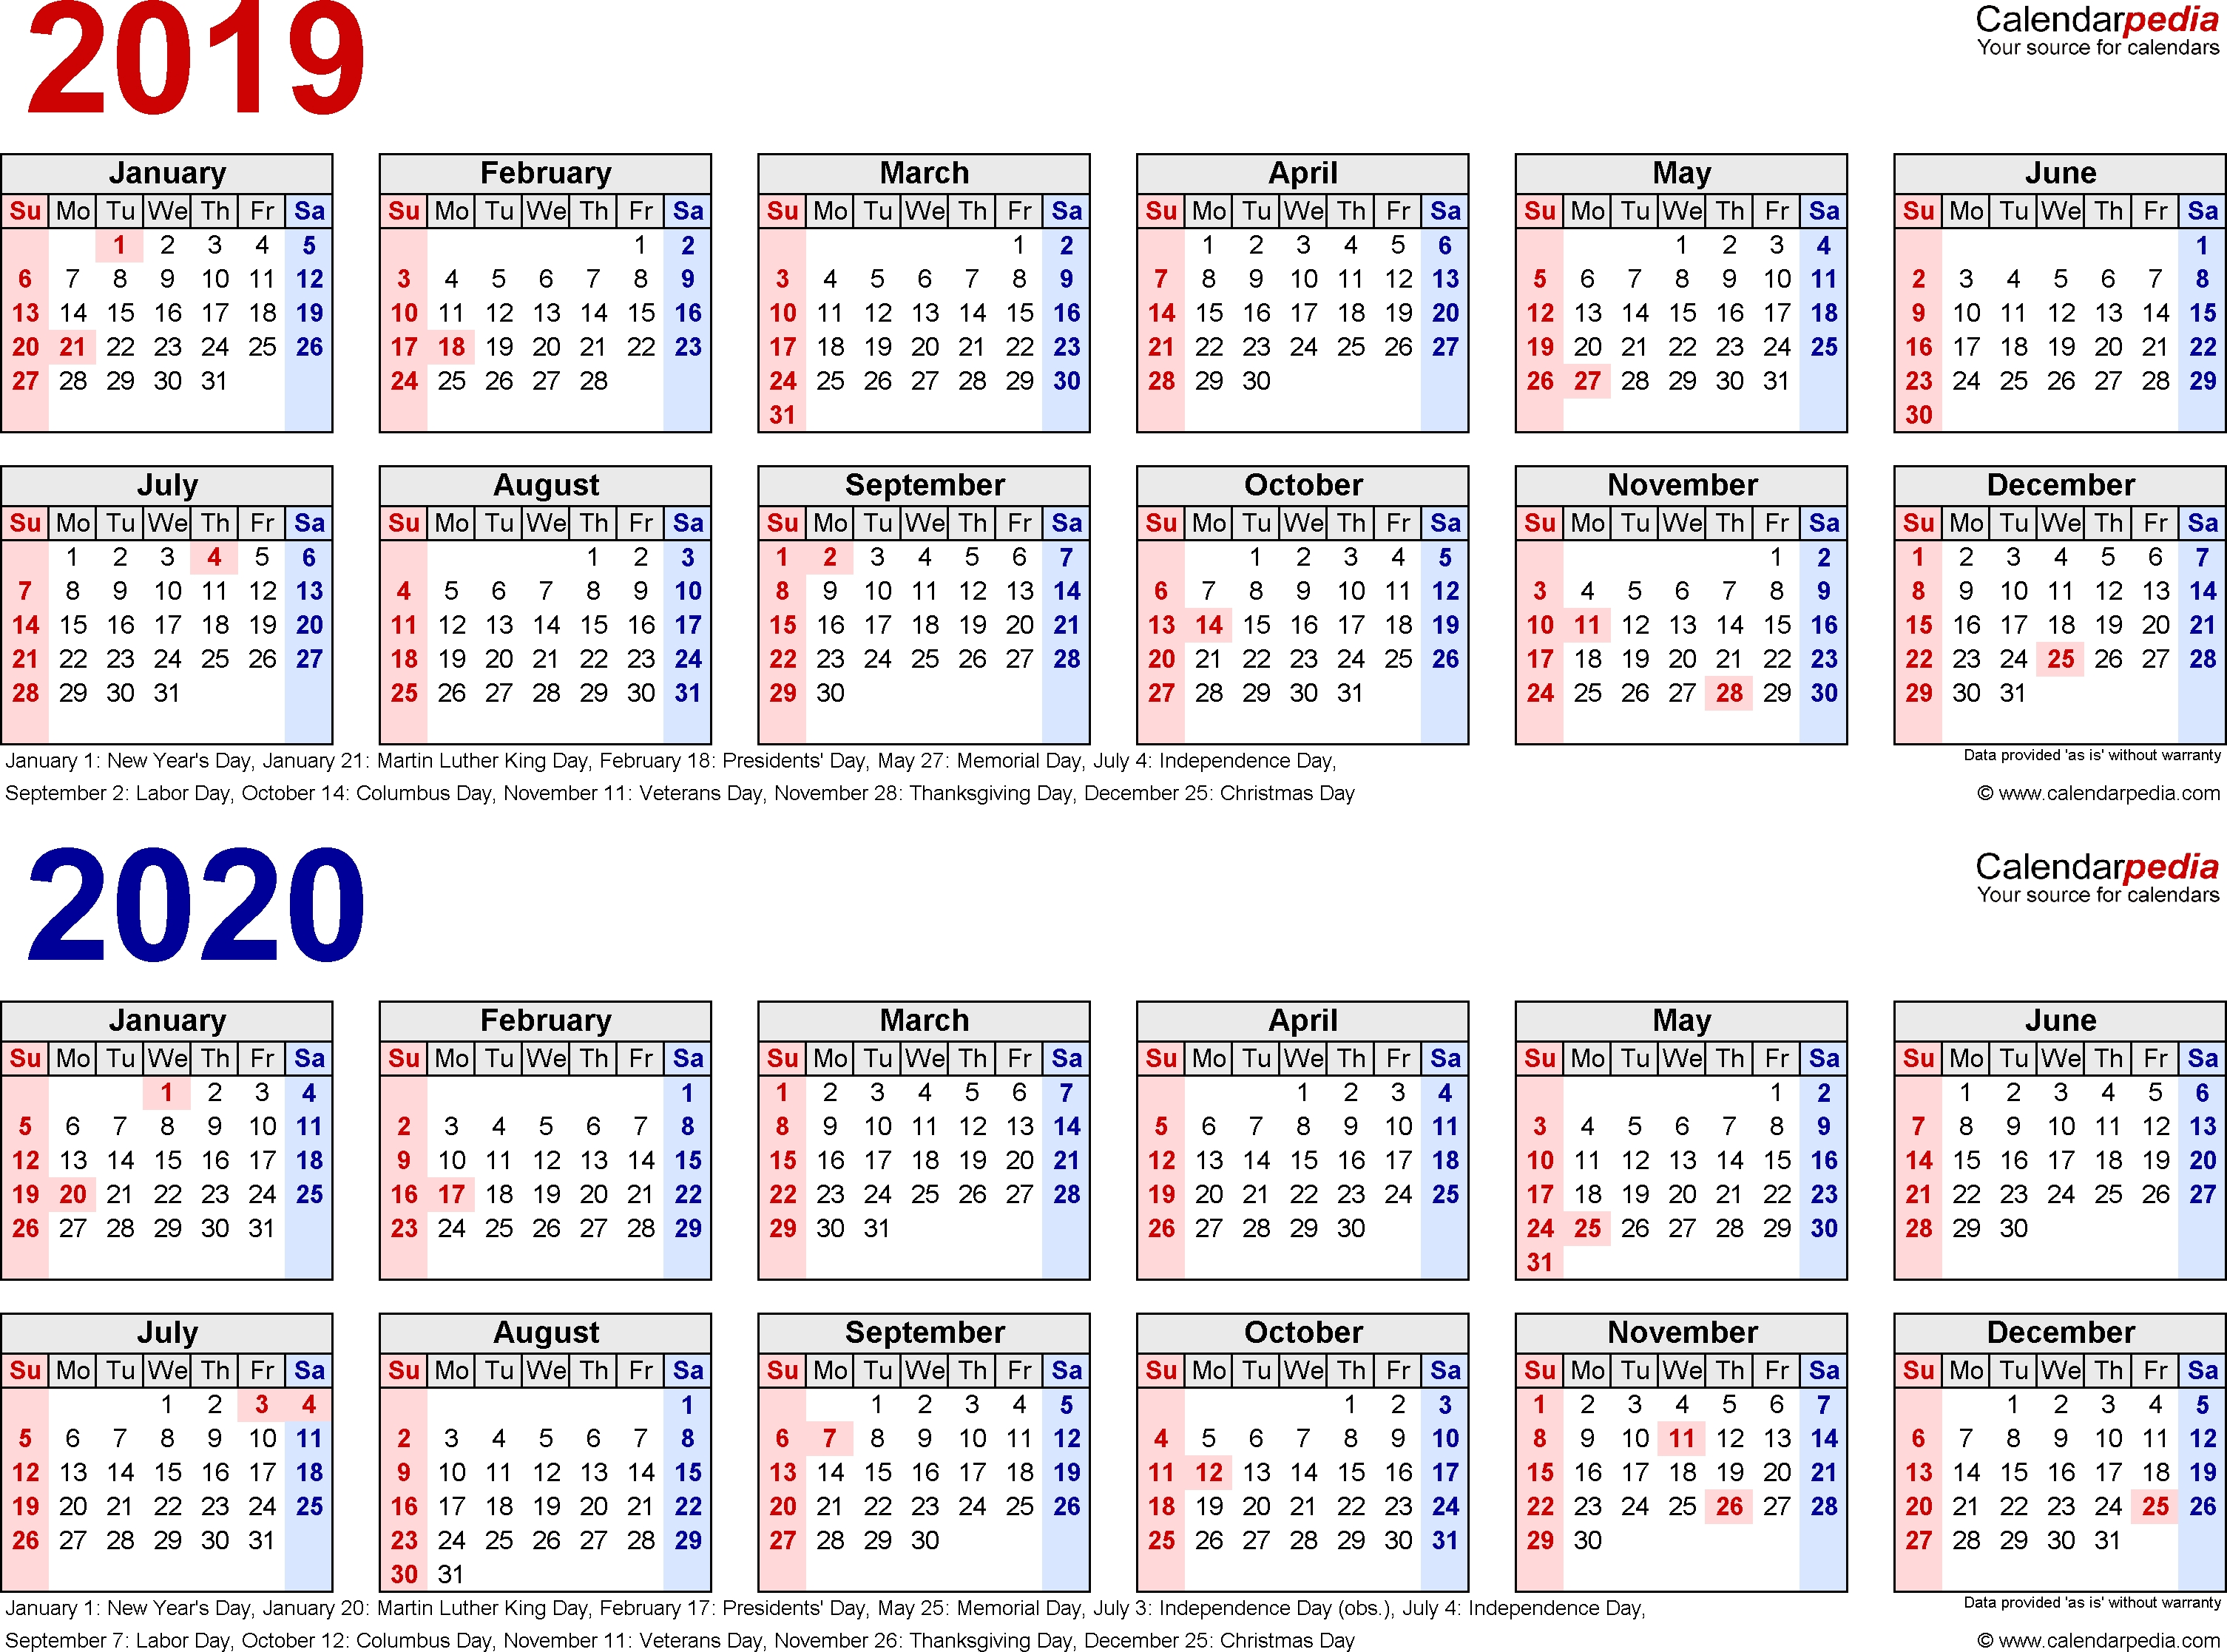 Islamic Calendar 2019 2020 - Google Search